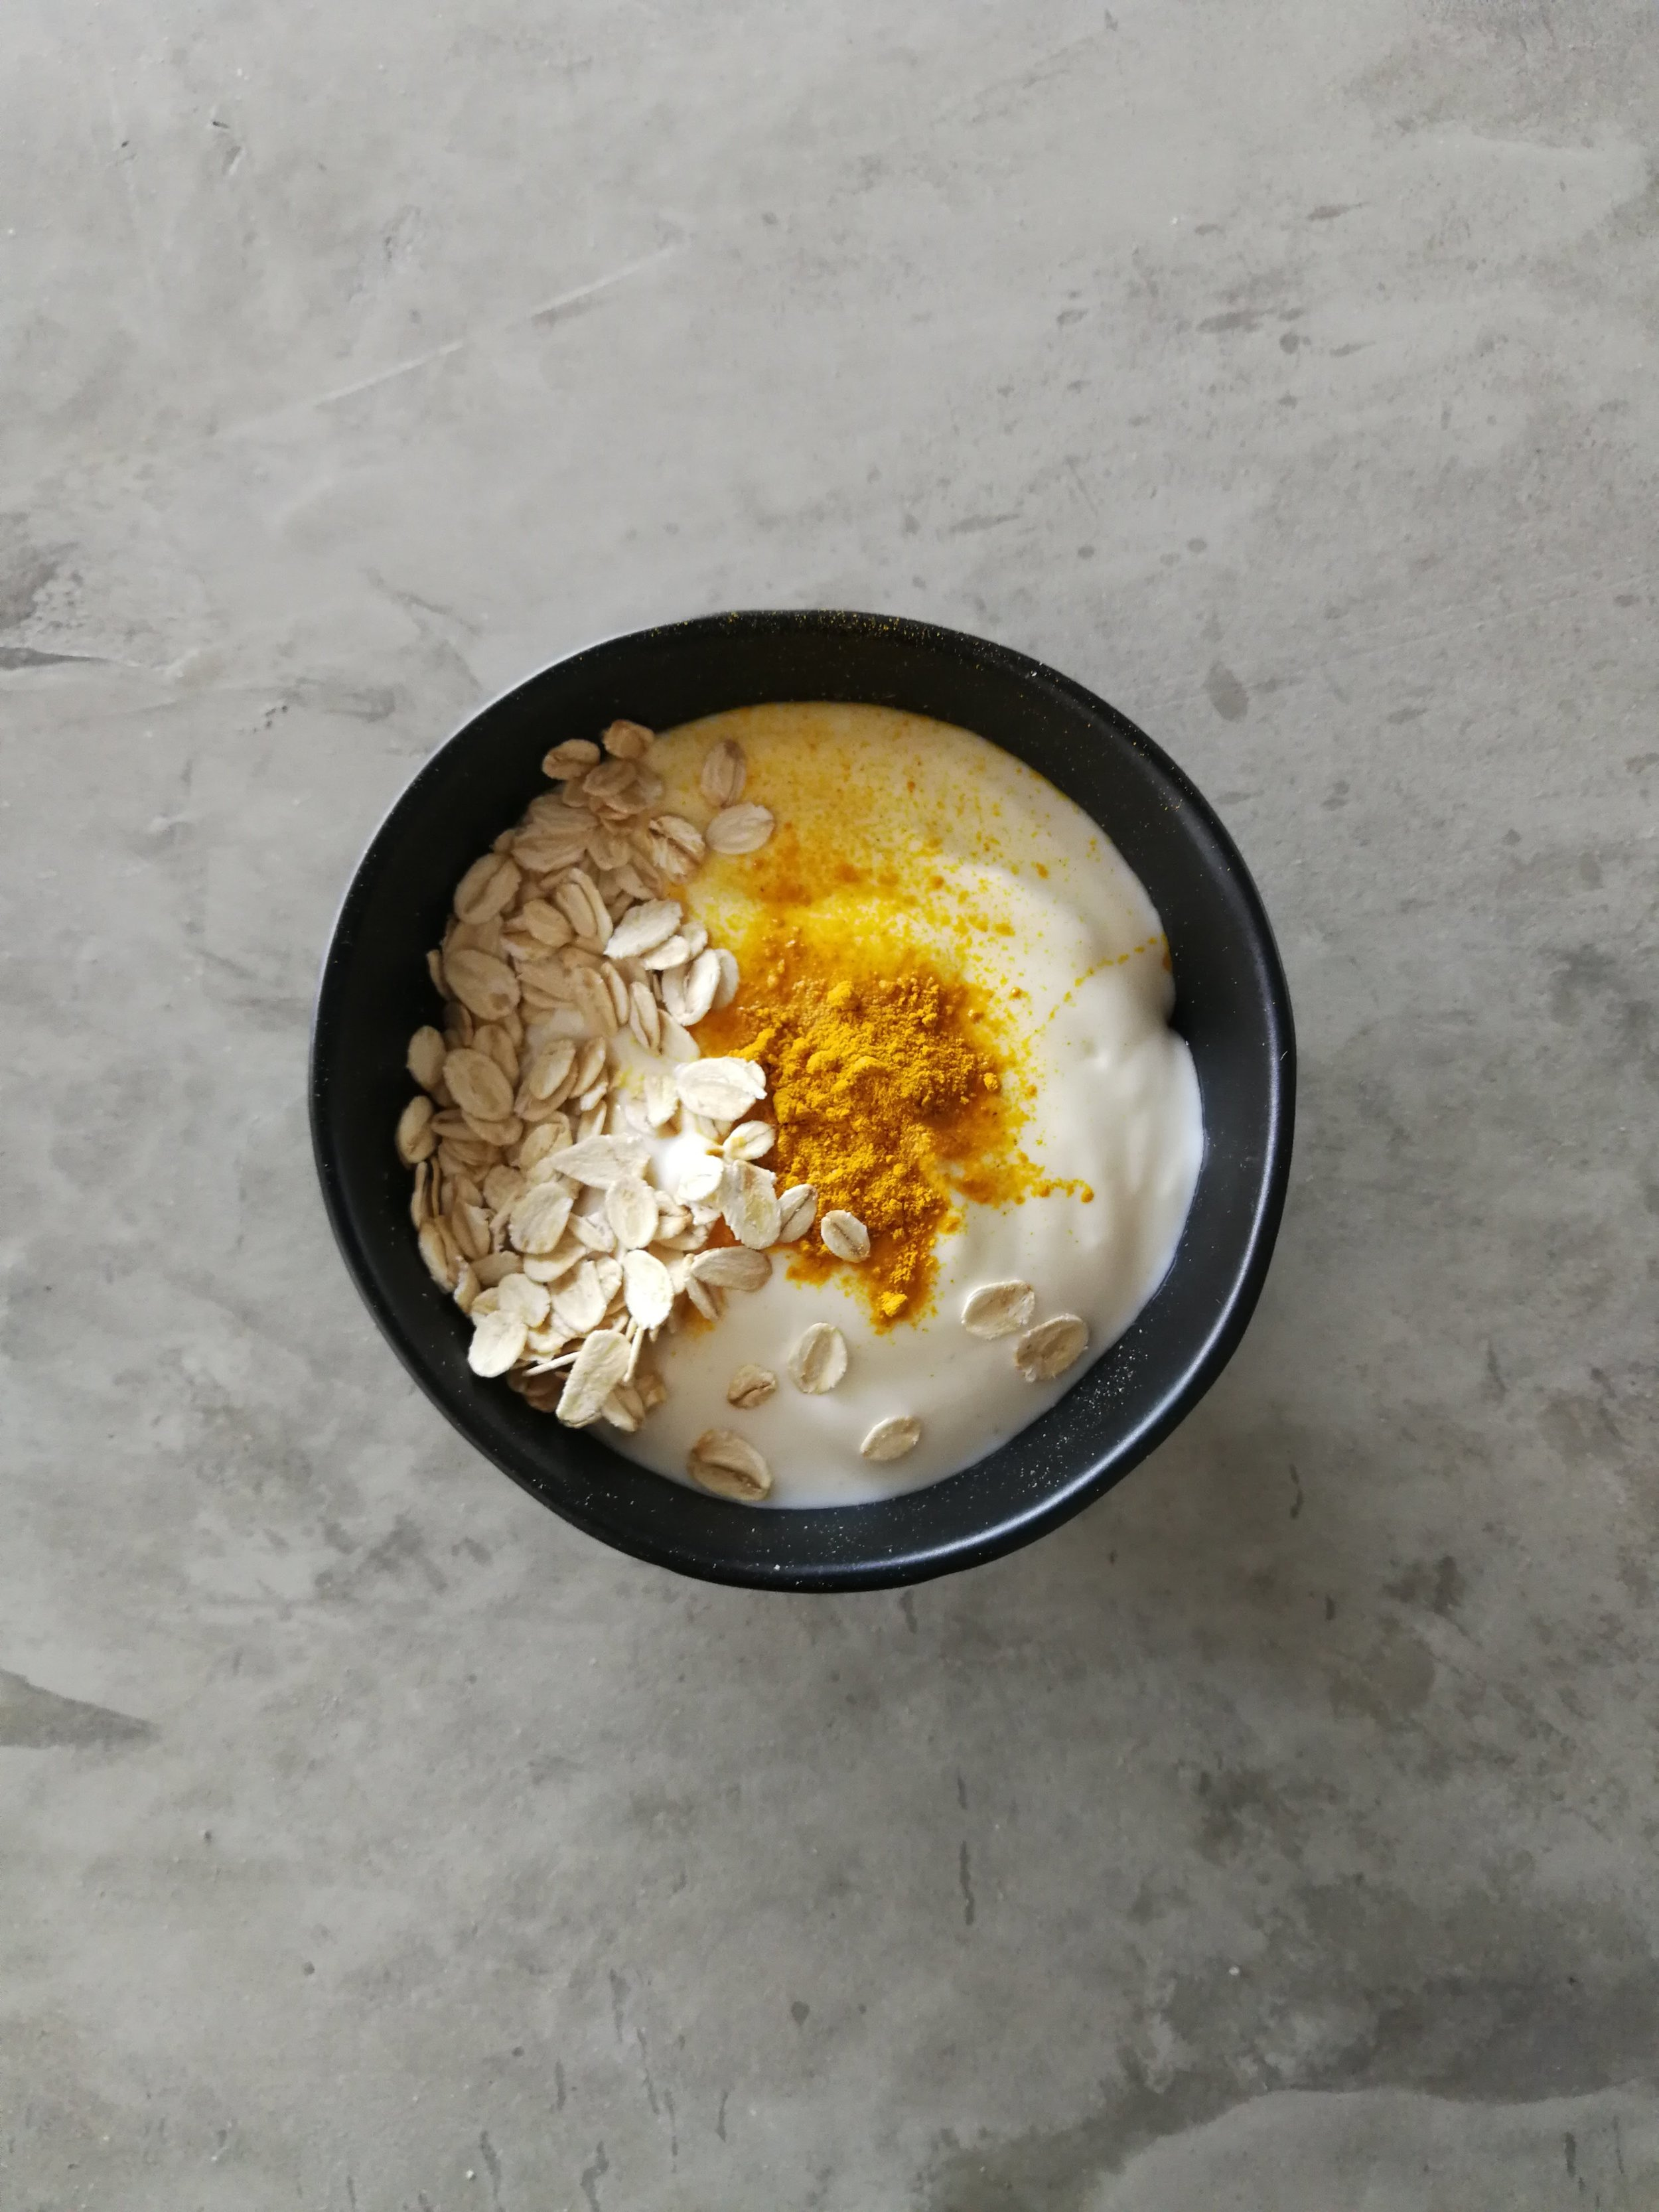 You Will Need... - 1/2 Cup Plain Yoghurt1 Tspn Turmeric1/4 Cup Oats